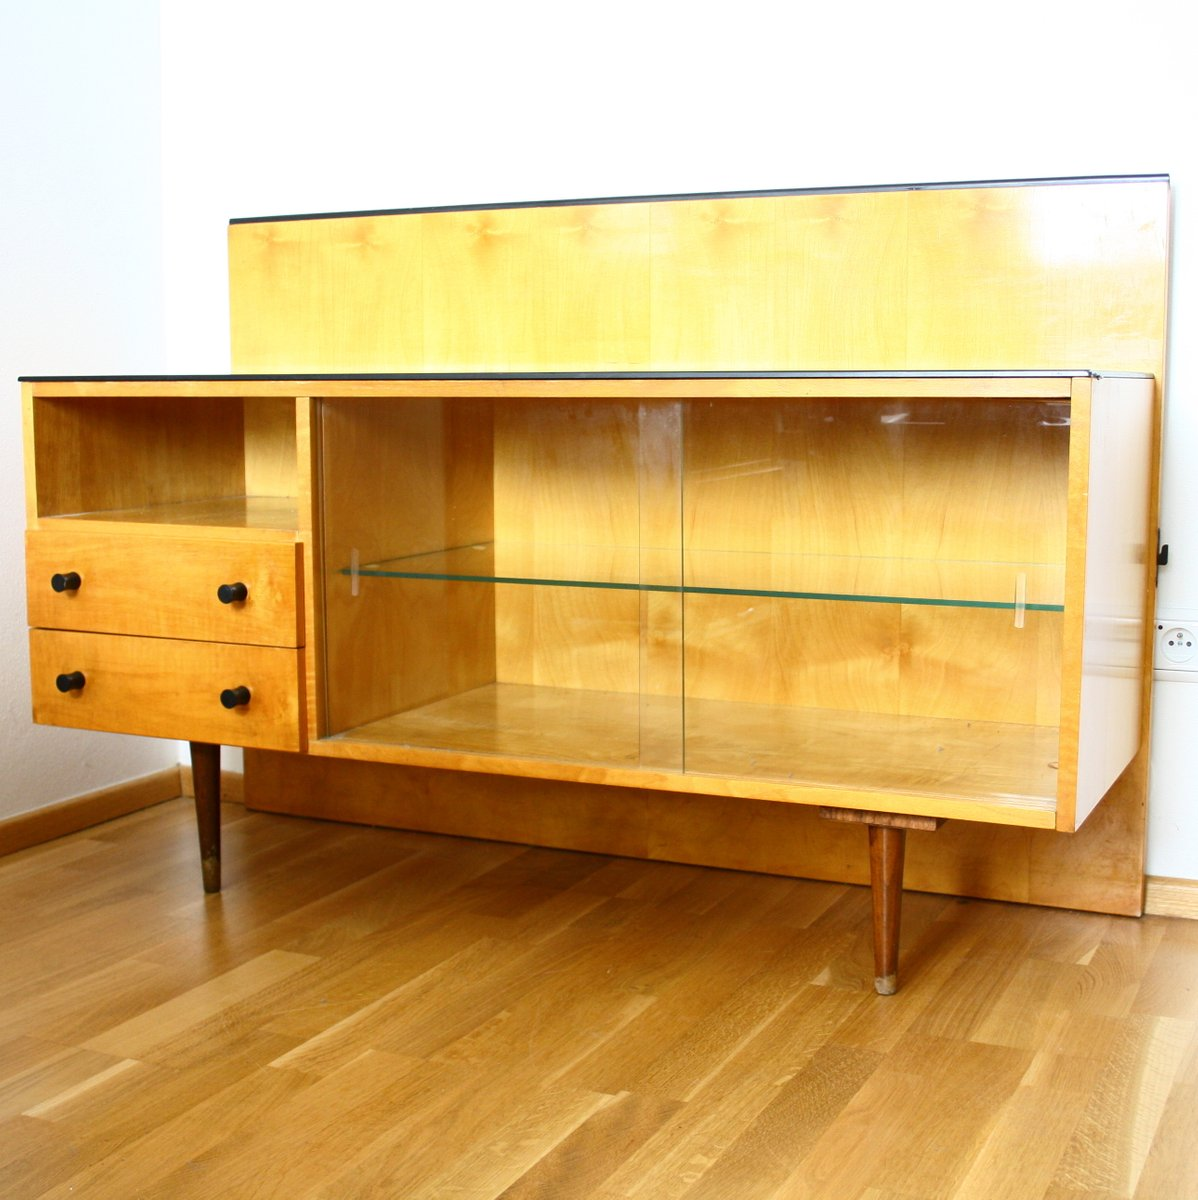 Vintage klivie bedroom cabinet and table from up zavody for Bedroom cabinets for sale